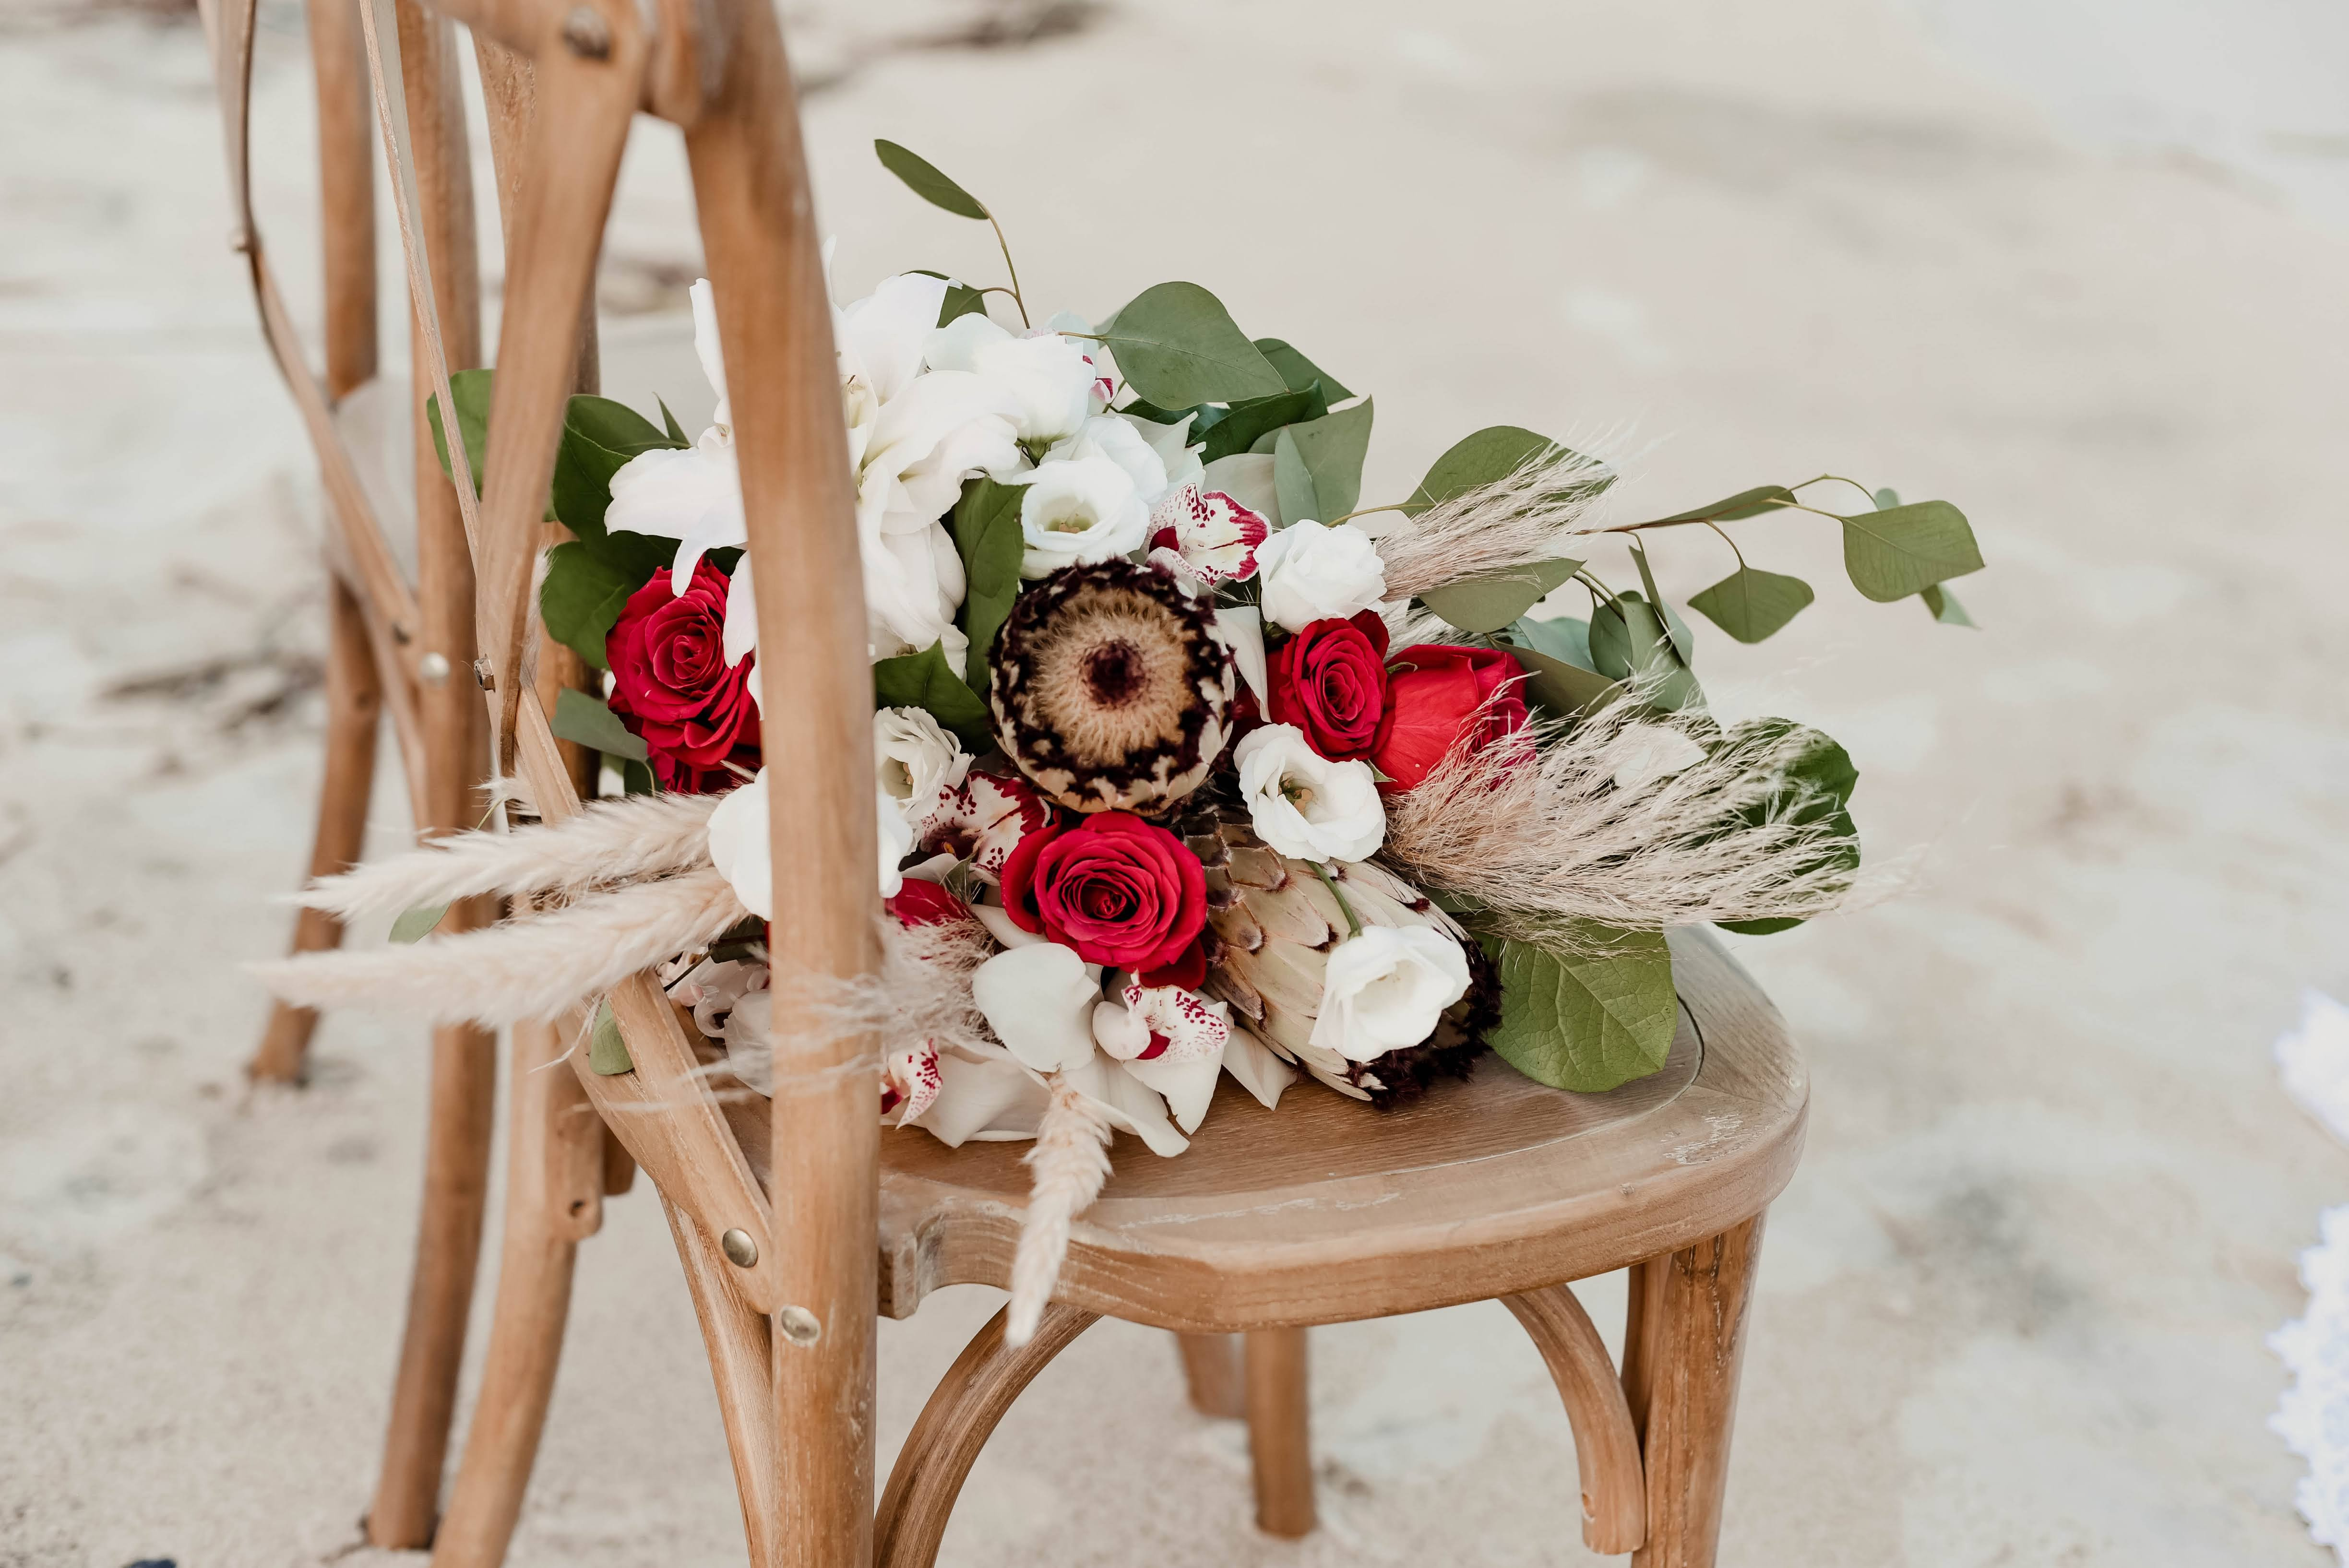 Hen House Photo Southport Wedding Flowers in Chair for Boho Wedding on Beach